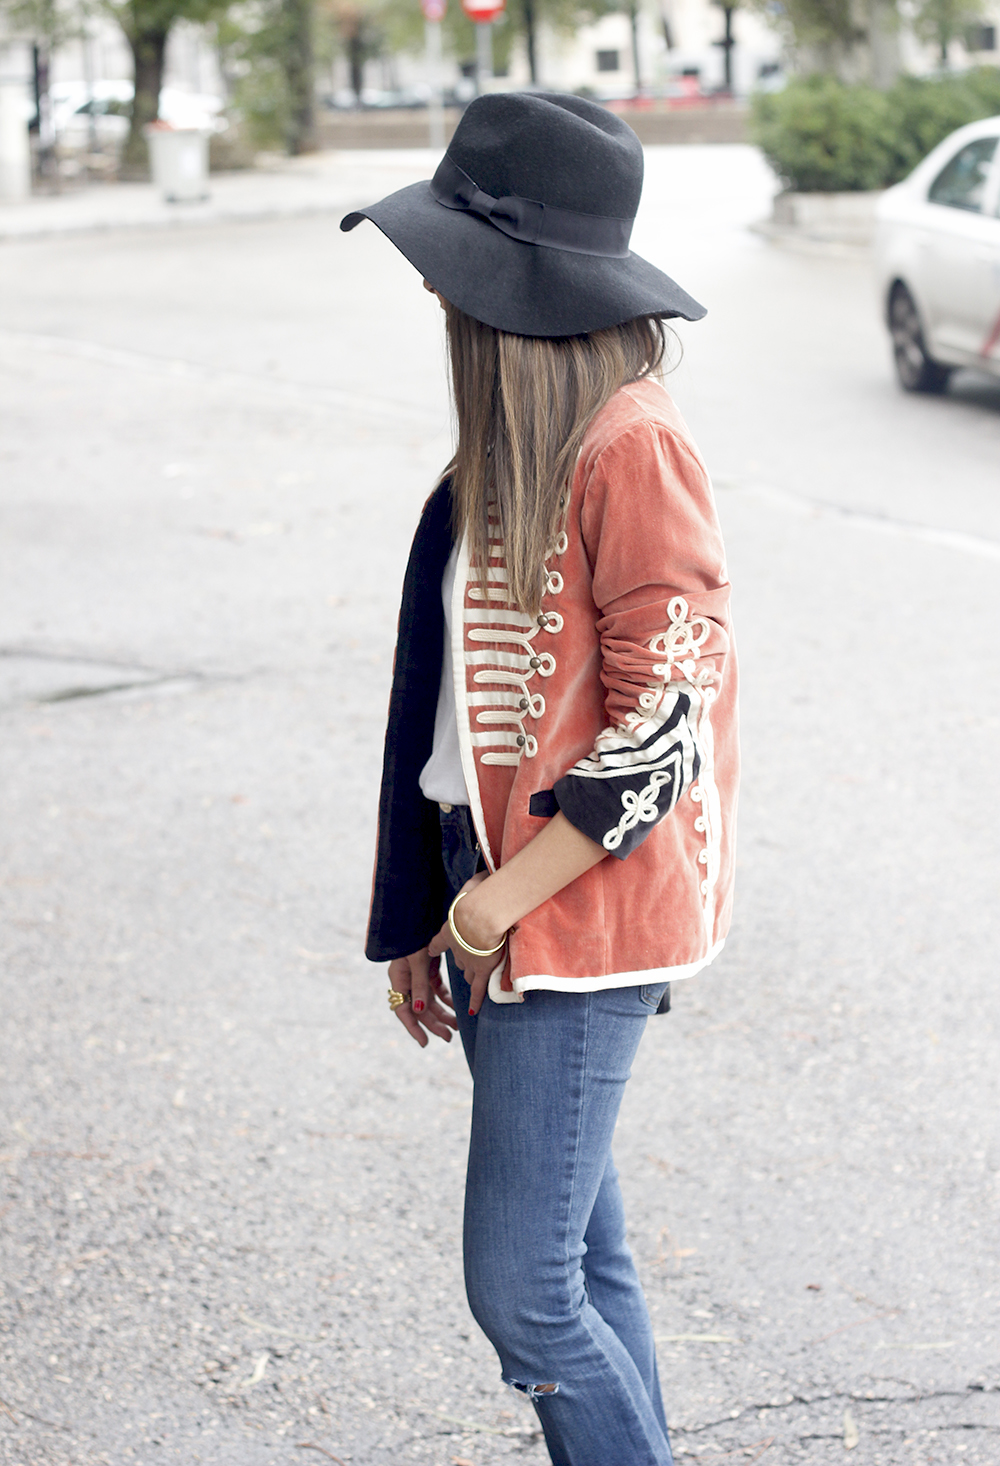 velvet jacket jeans hat rainny day heels accessories outfit style fashion05